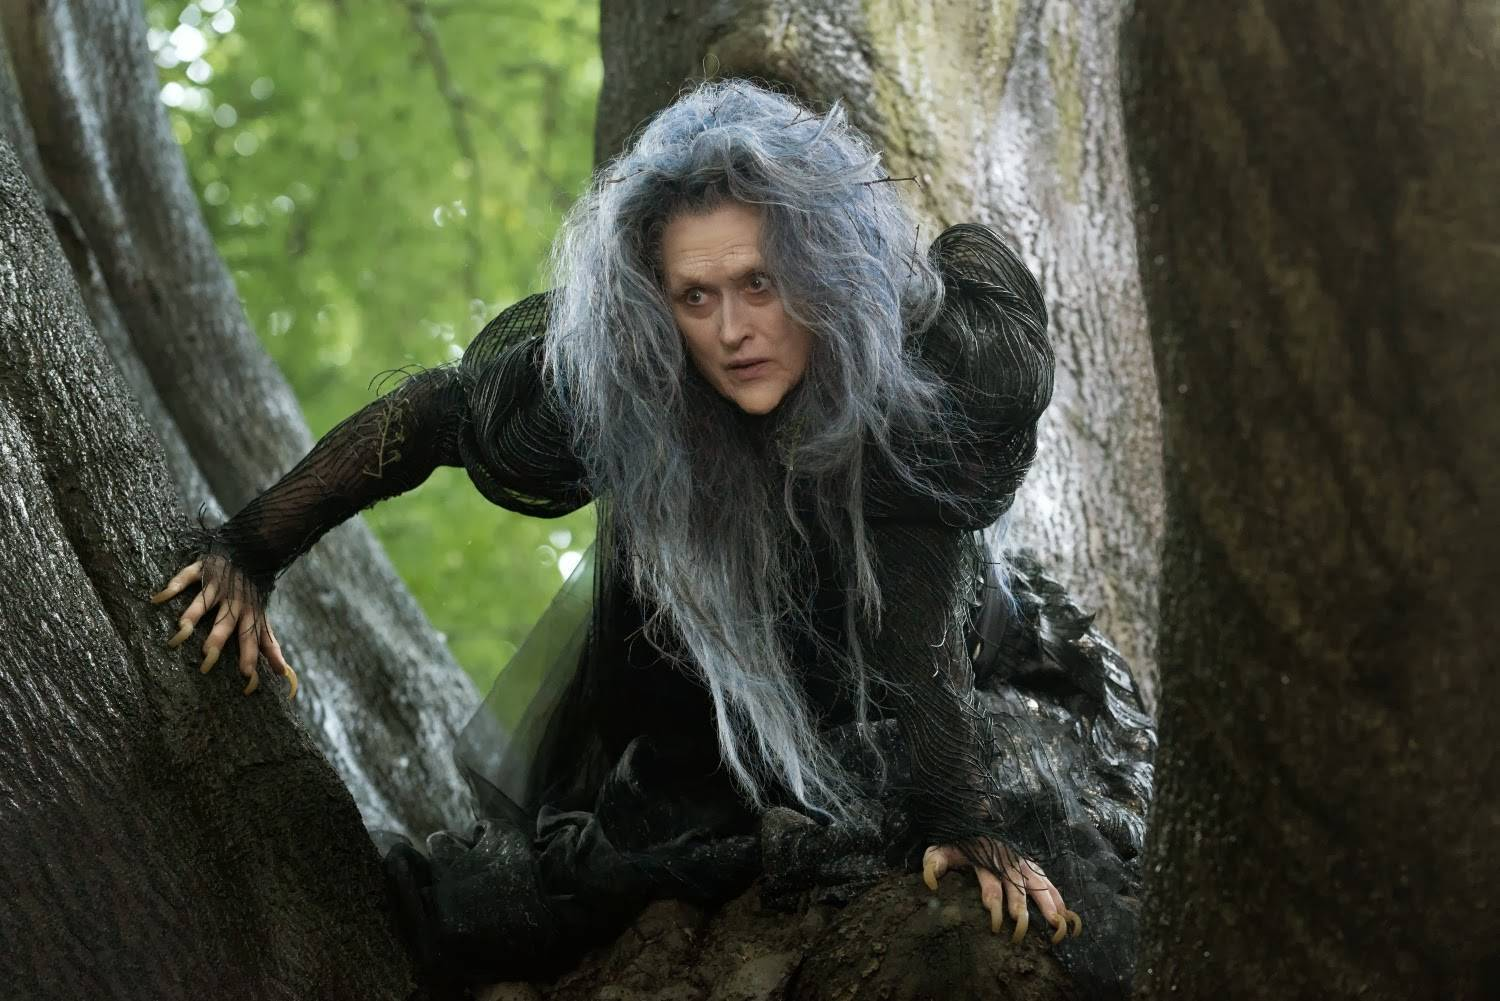 Into the Woods, primo teaser trailer del nuovo film Disney